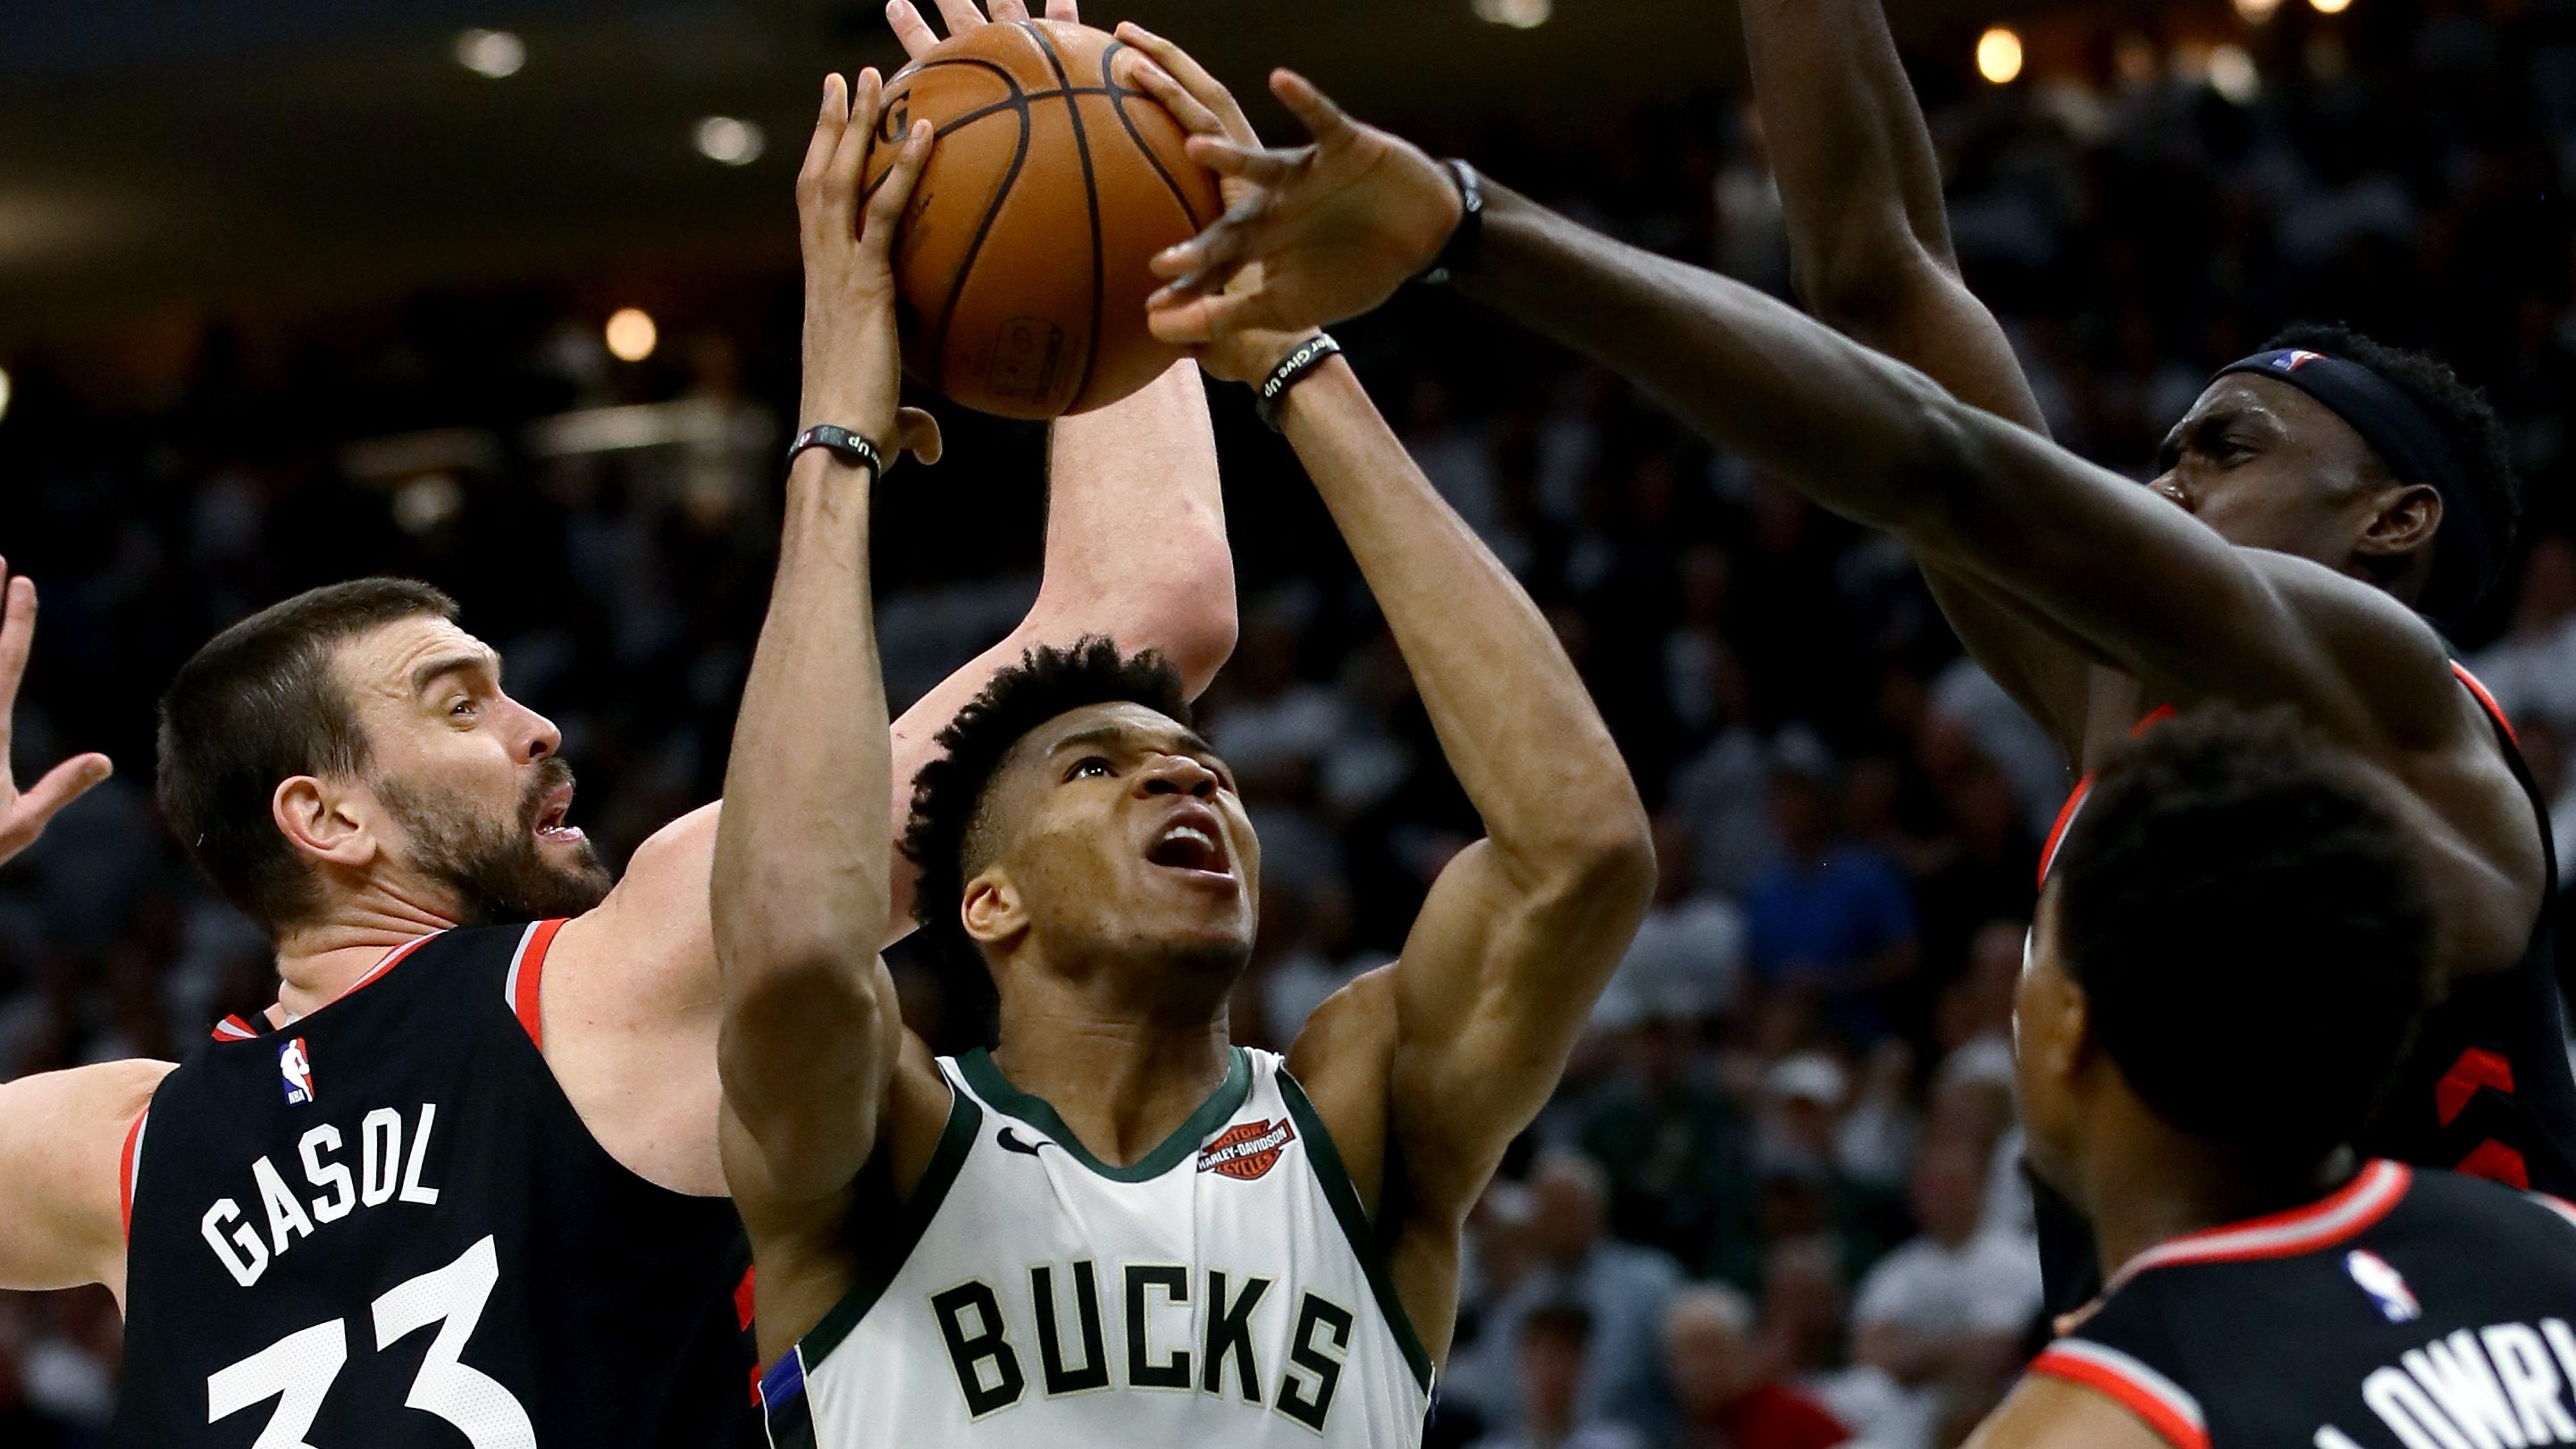 How To Watch Raptors Vs Bucks Game 2 Online For Free